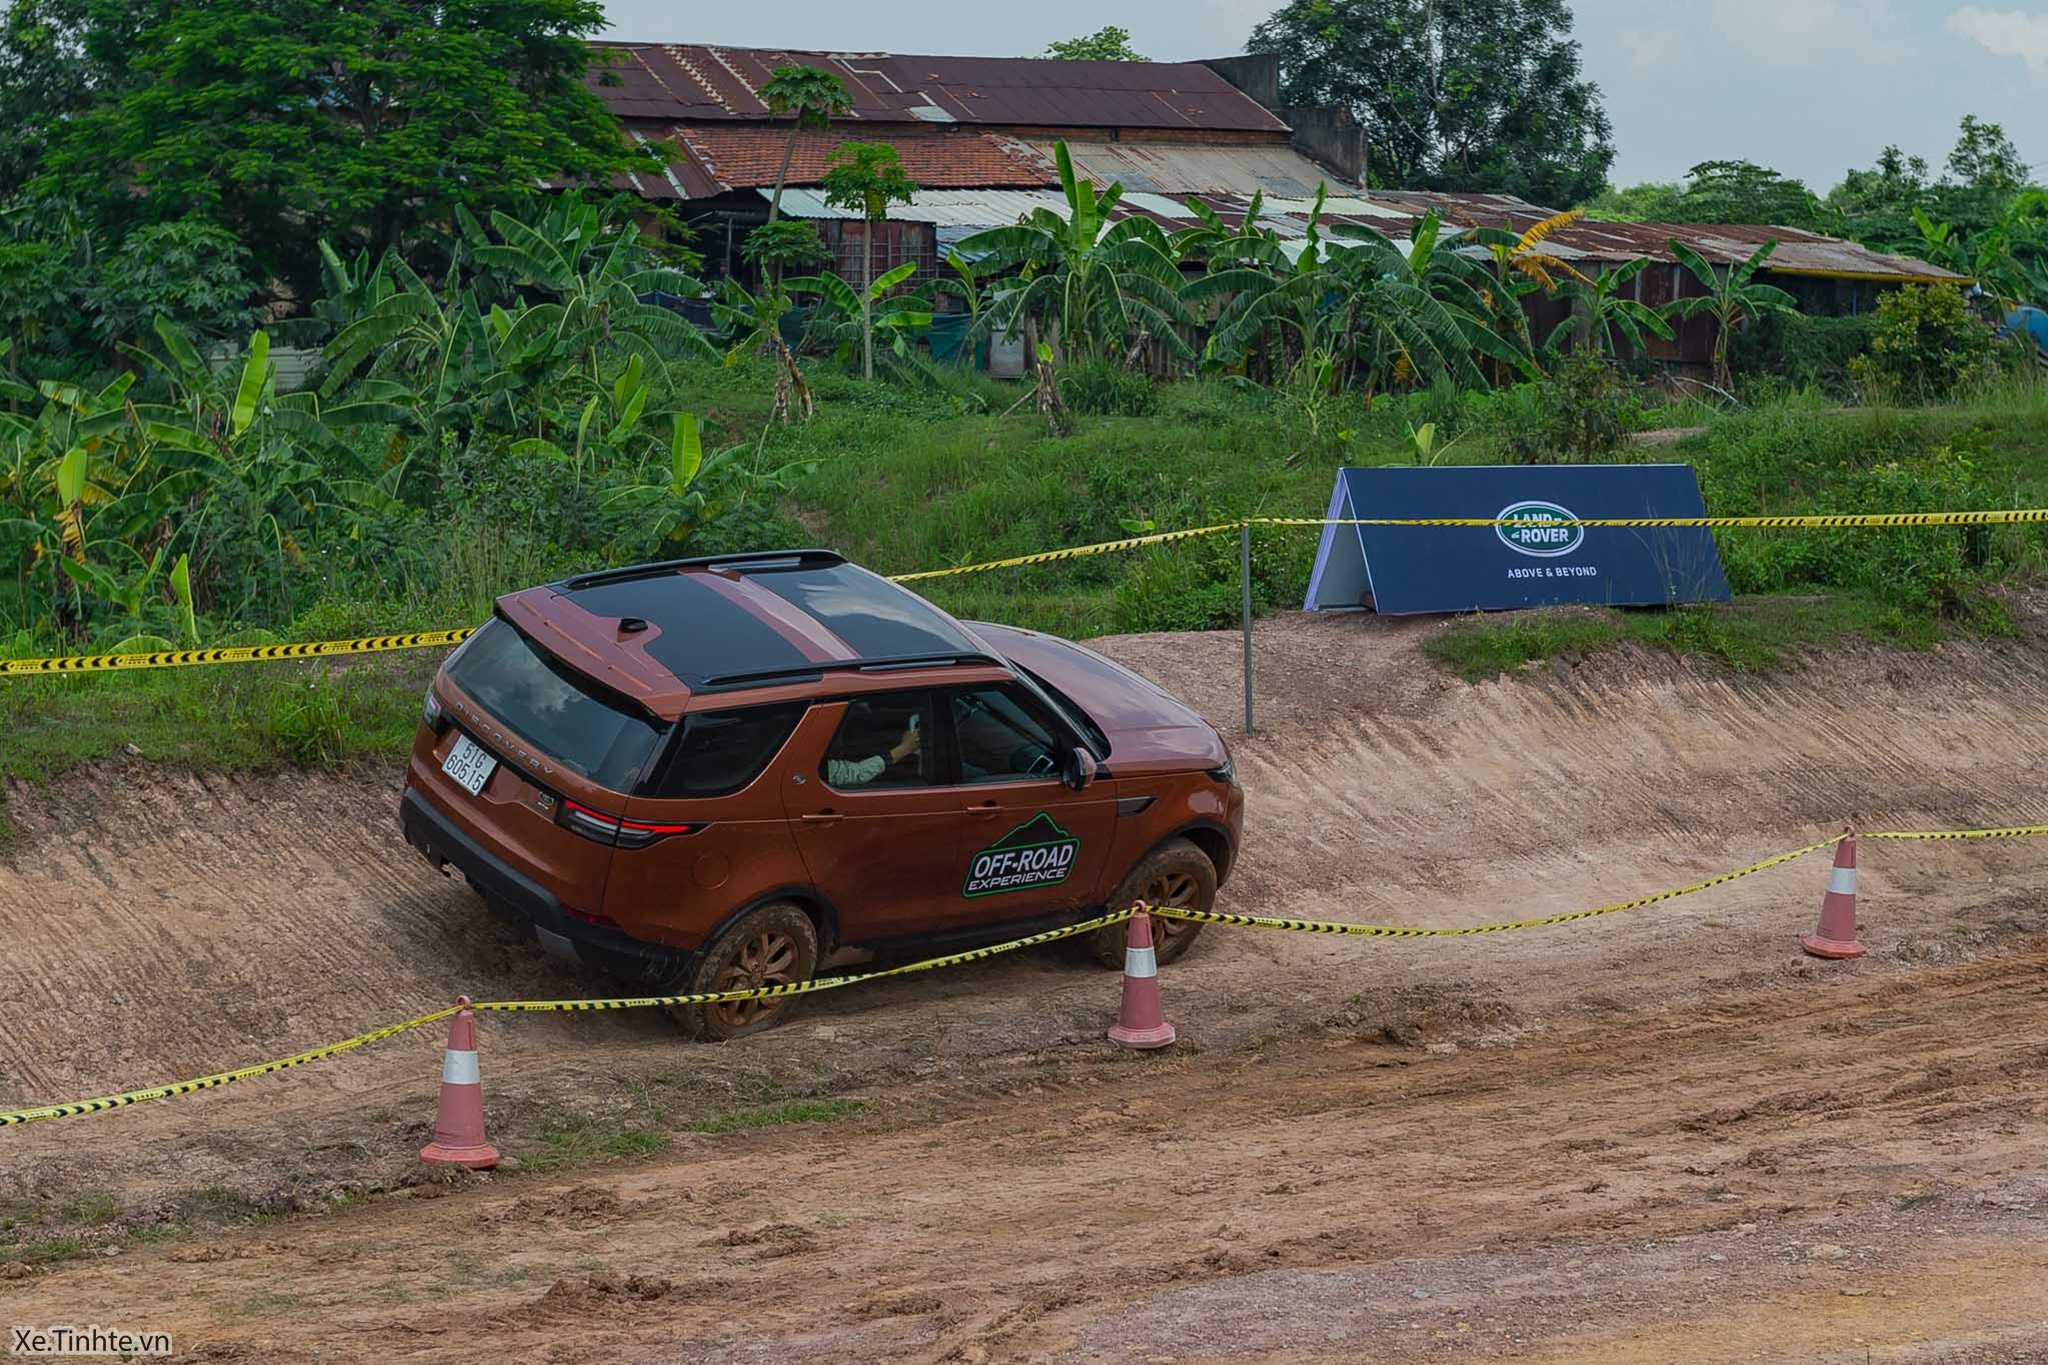 Land_Rover_Off-road_Experience _2018_Xe_Tinhte-015.jpg